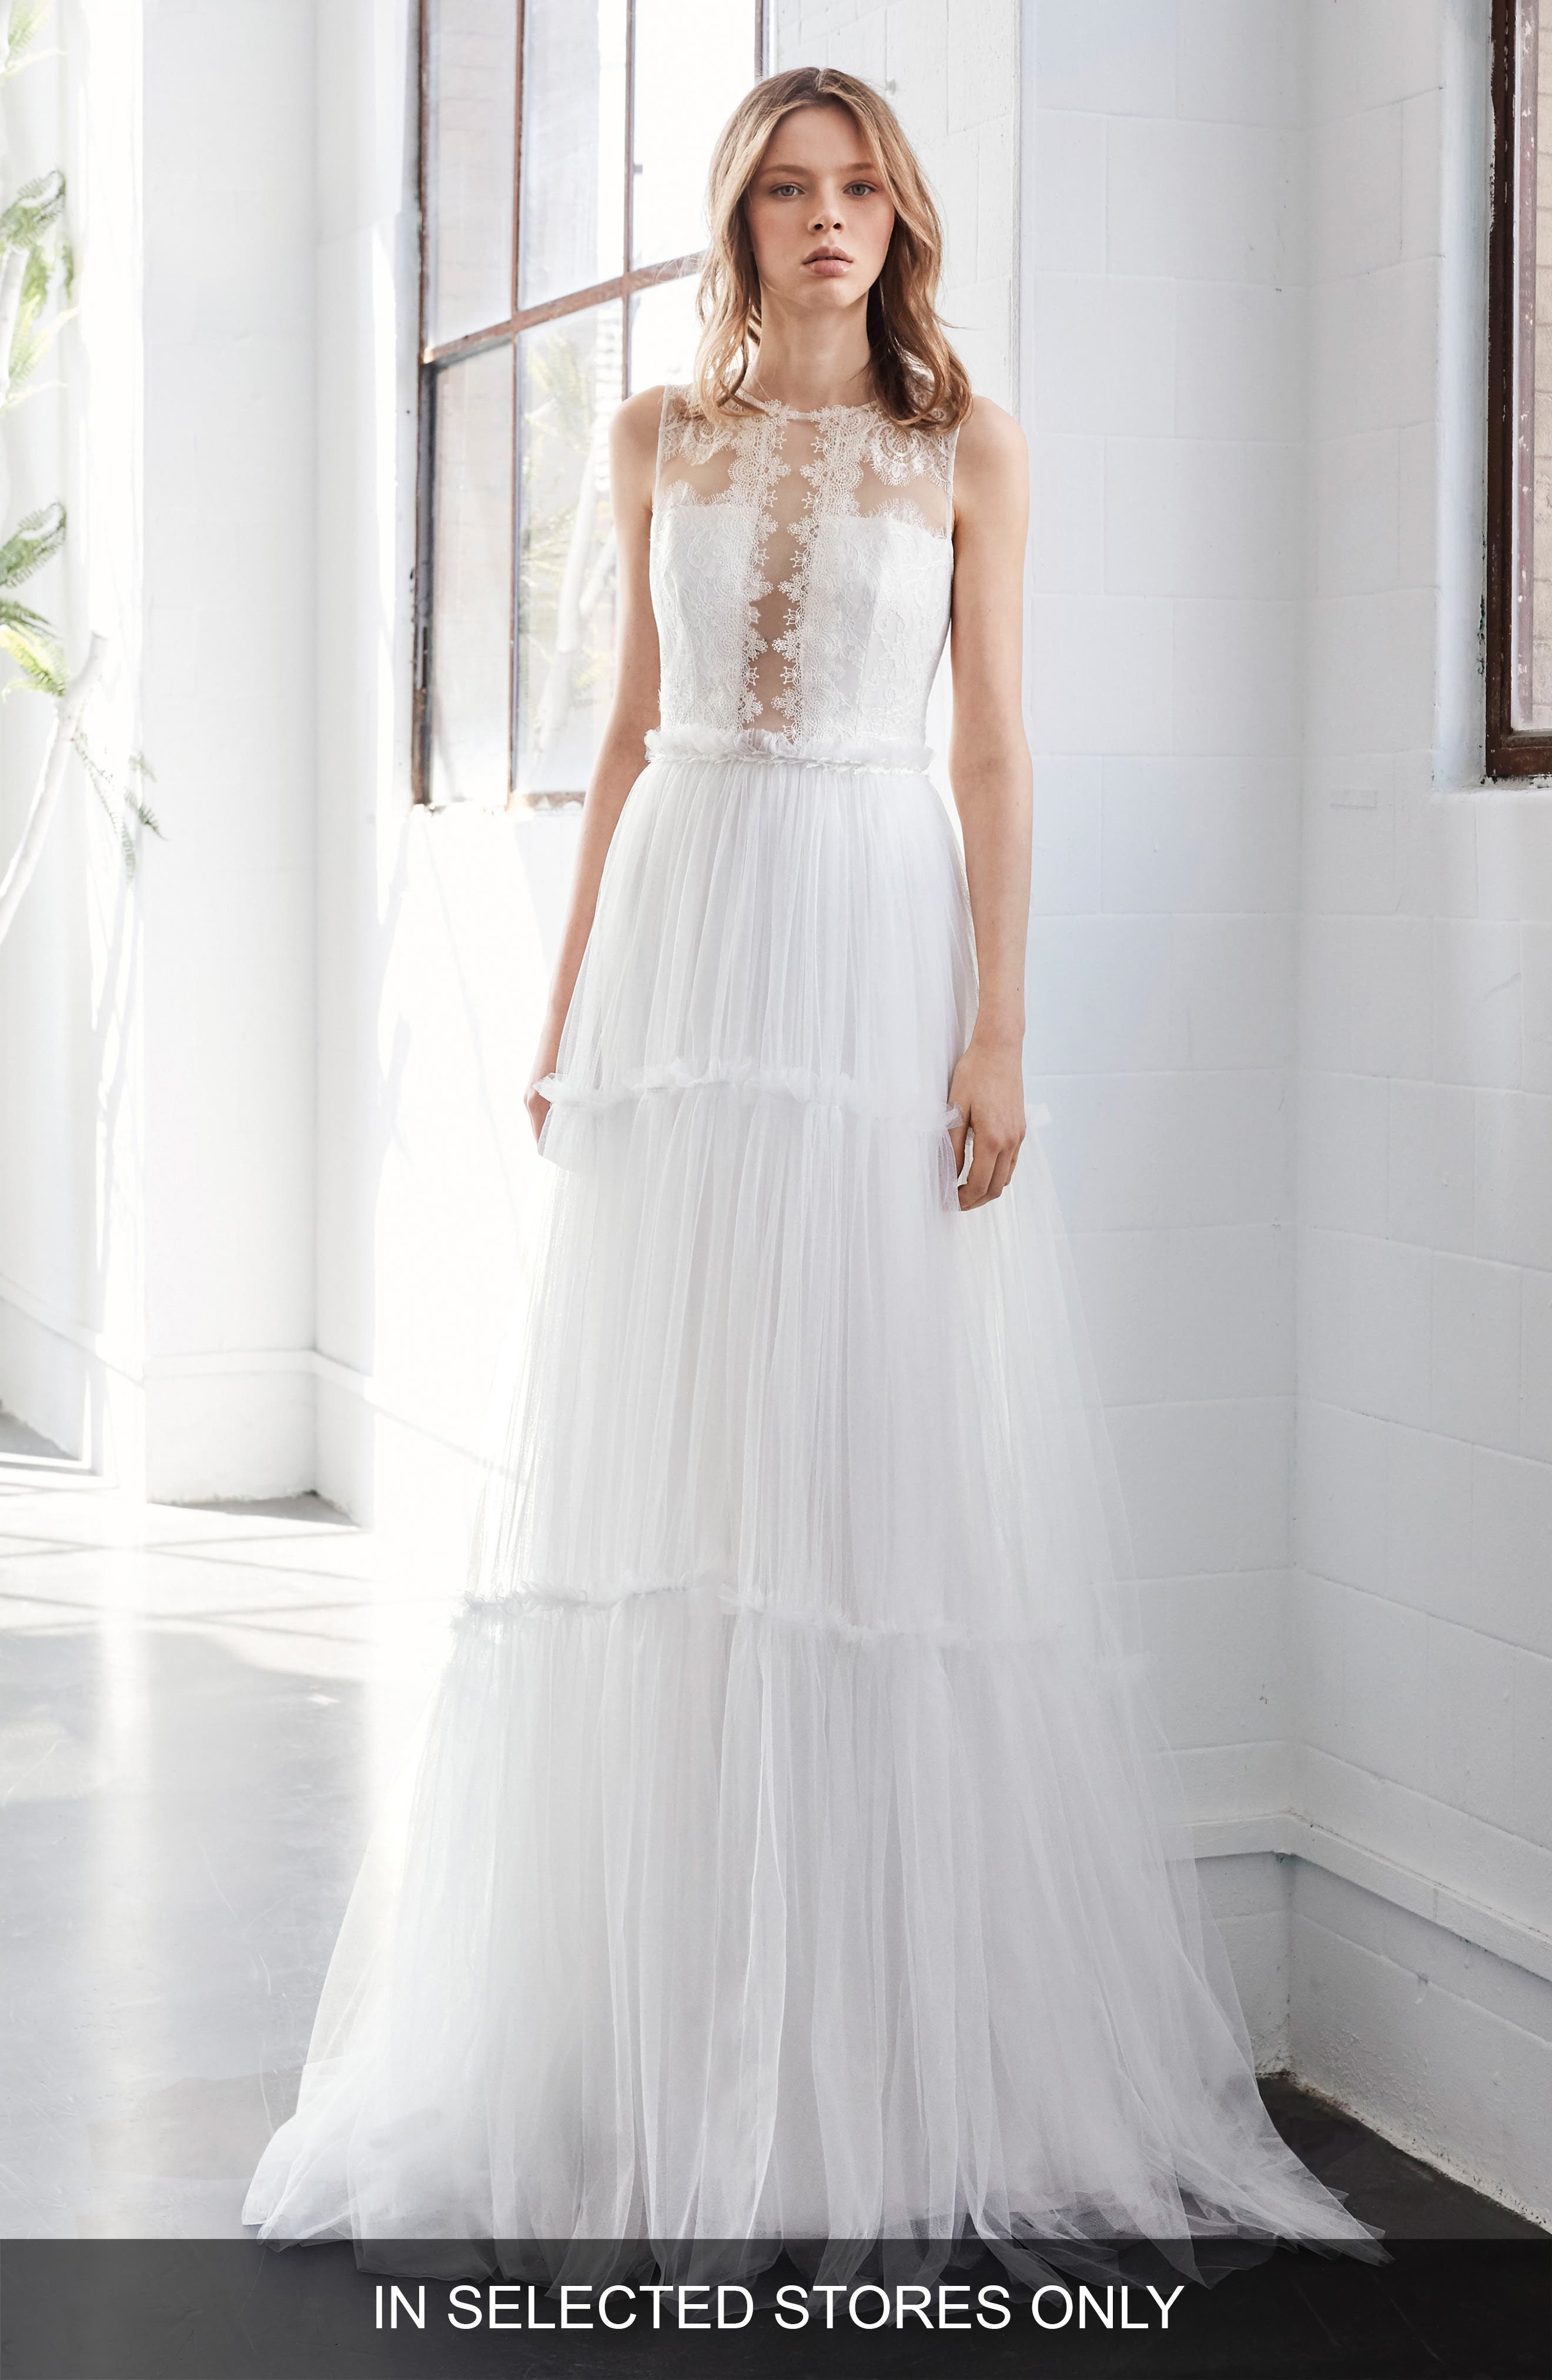 Inmaculada Garcia Jaspe Lace & Tulle A-Line Gown, Size IN STORE ONLY - Ivory